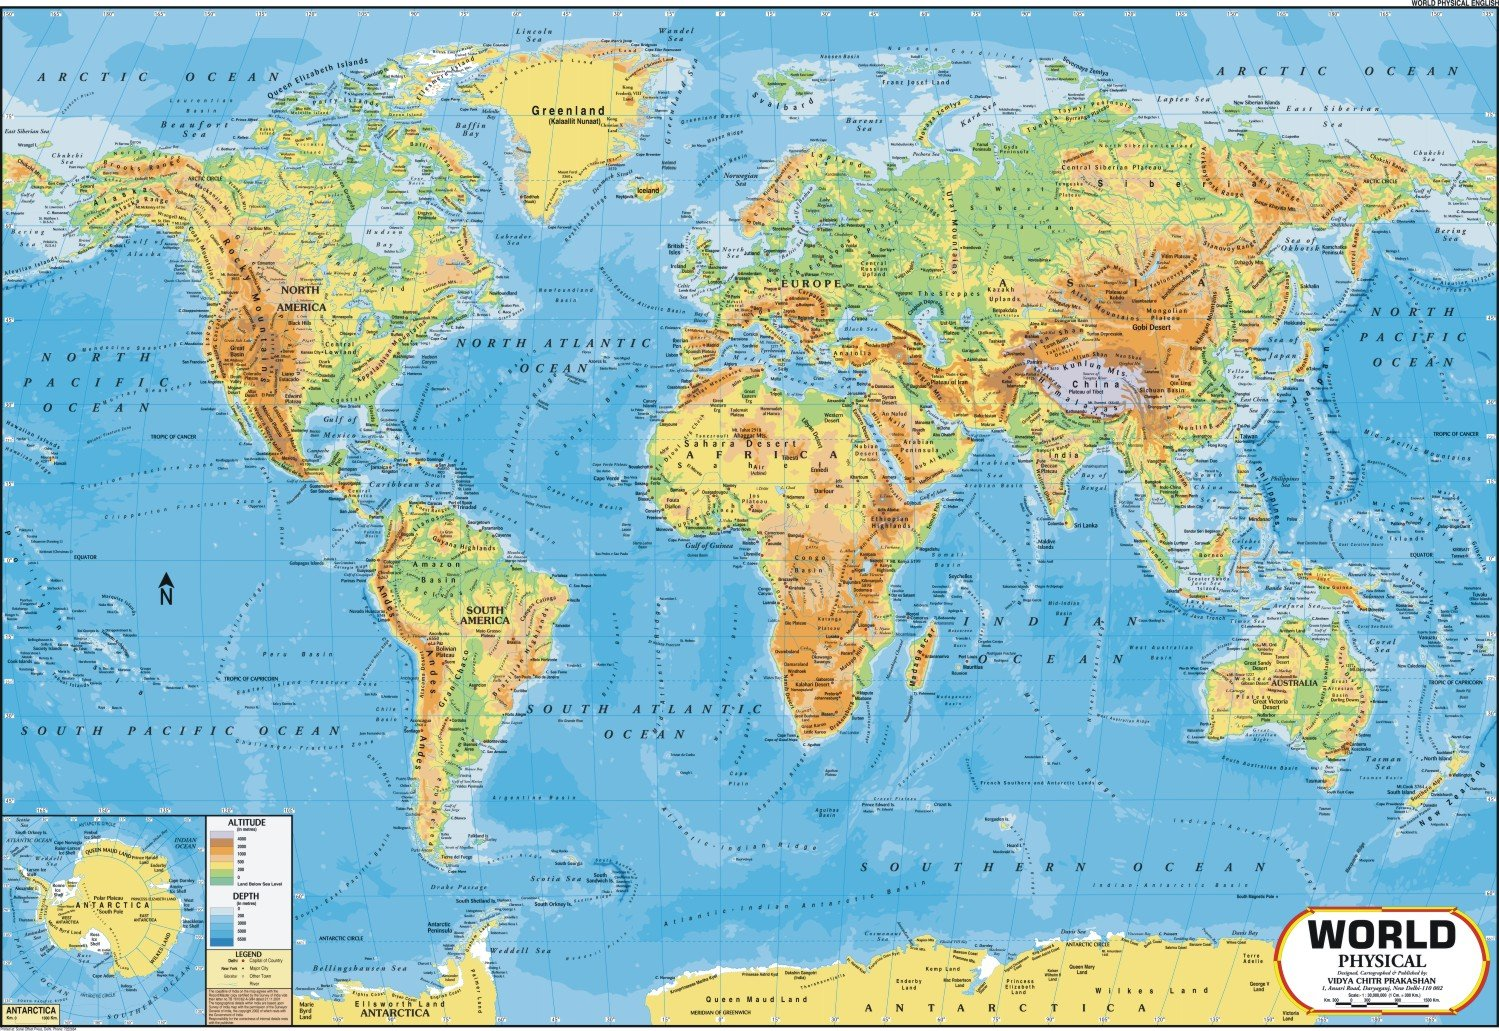 Buy world map physical 100 x 70 cm book online at low prices in buy world map physical 100 x 70 cm book online at low prices in india world map physical 100 x 70 cm reviews ratings amazon gumiabroncs Choice Image